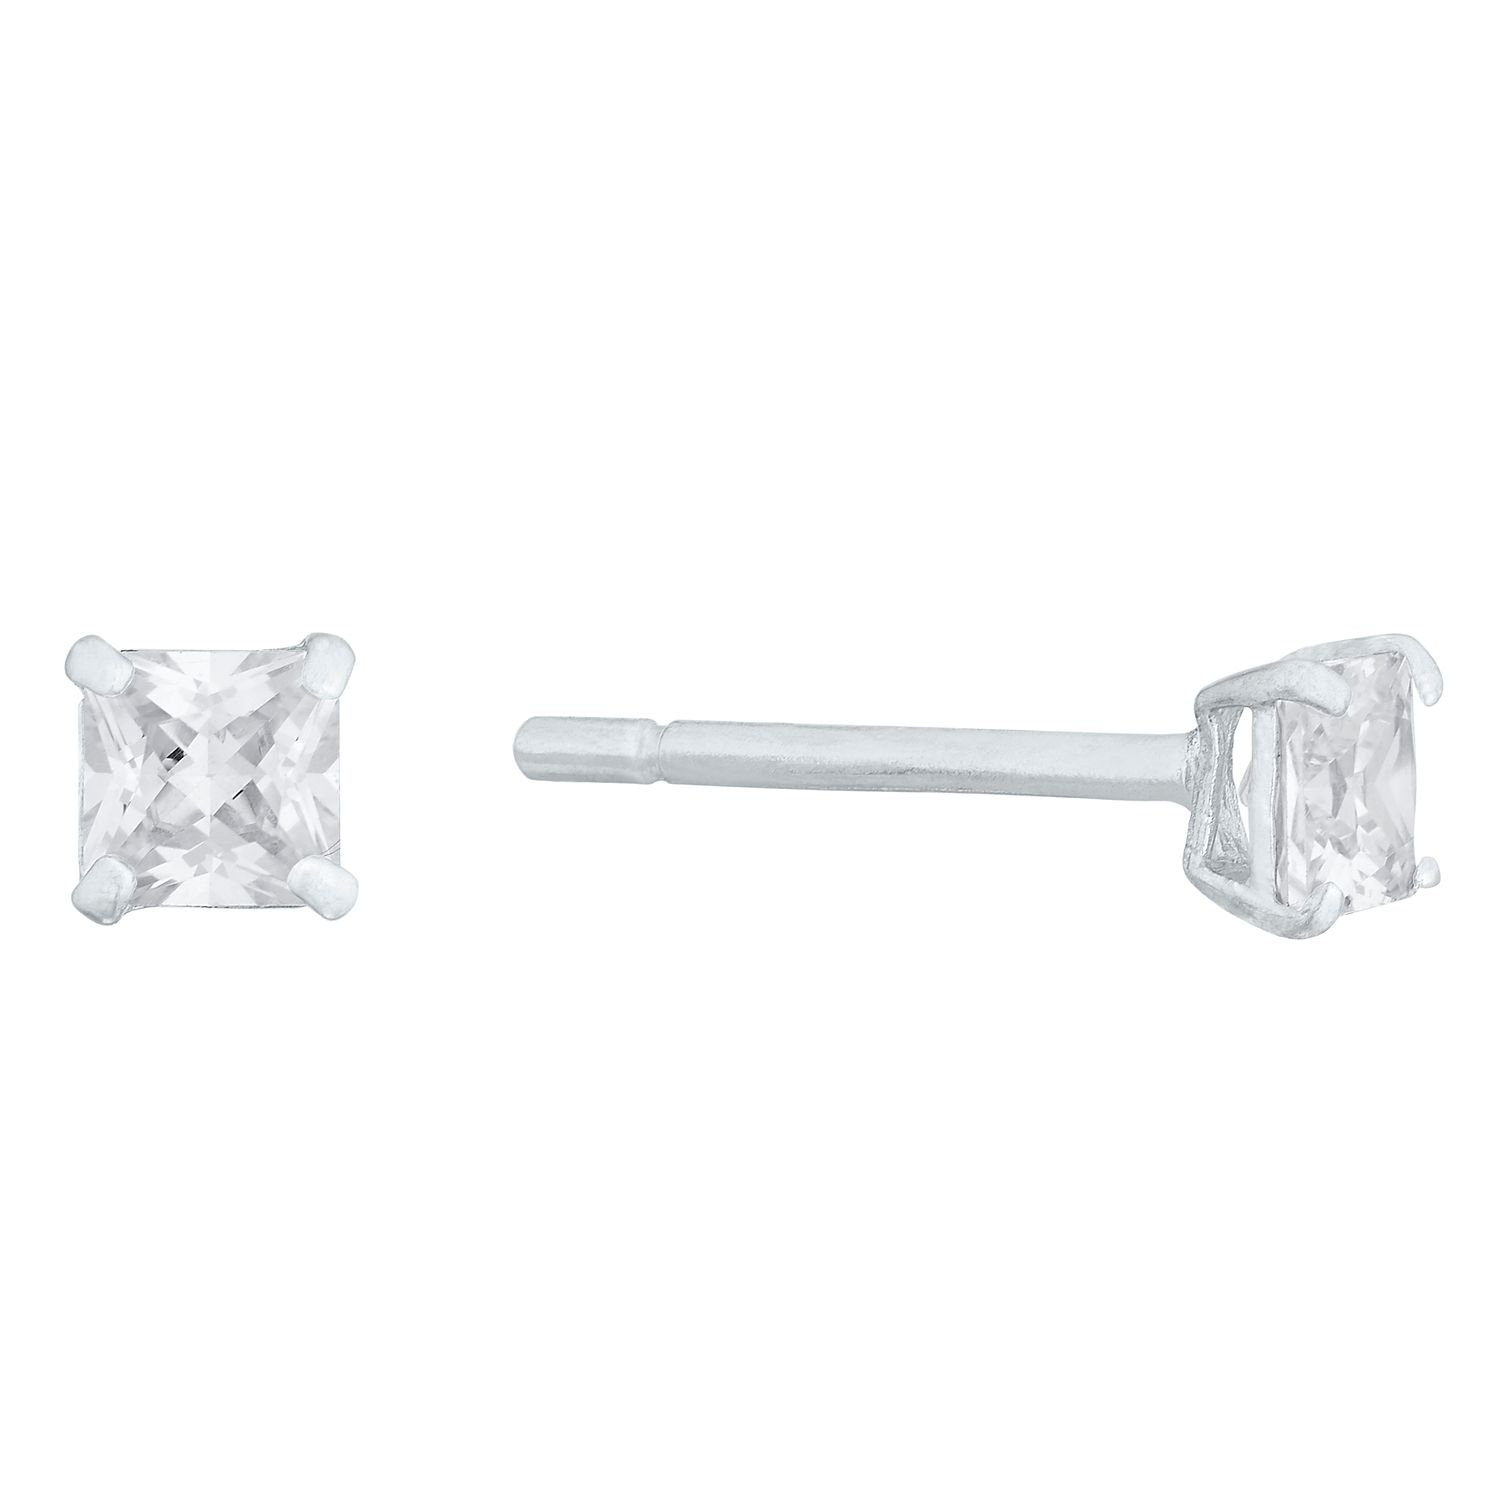 9ct White Gold Cubic Zirconia Square 3mm Stud Earrings - Product number 4515986